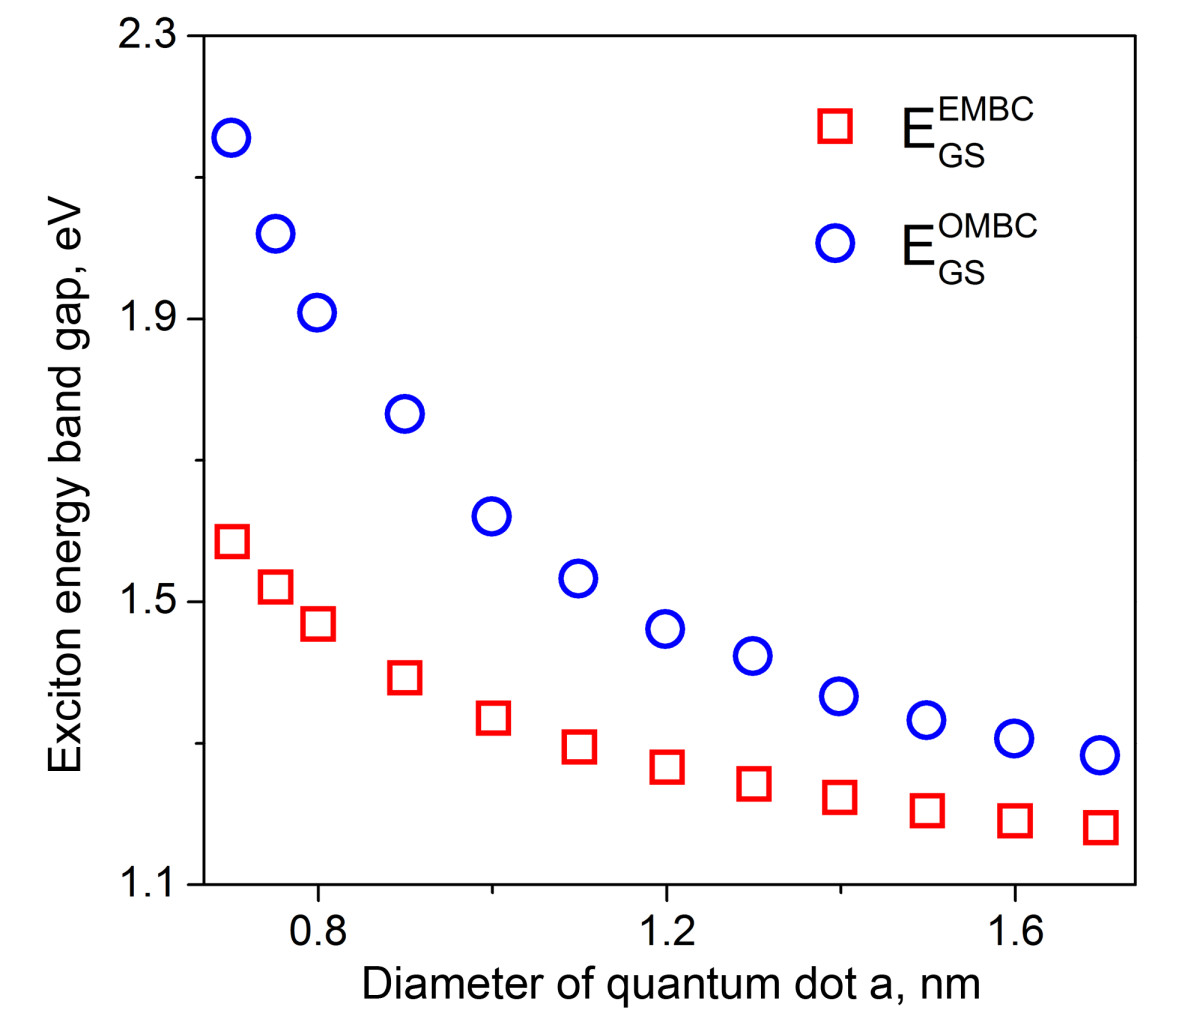 http://static-content.springer.com/image/art%3A10.1186%2F1556-276X-7-371/MediaObjects/11671_2012_Article_890_Fig2_HTML.jpg